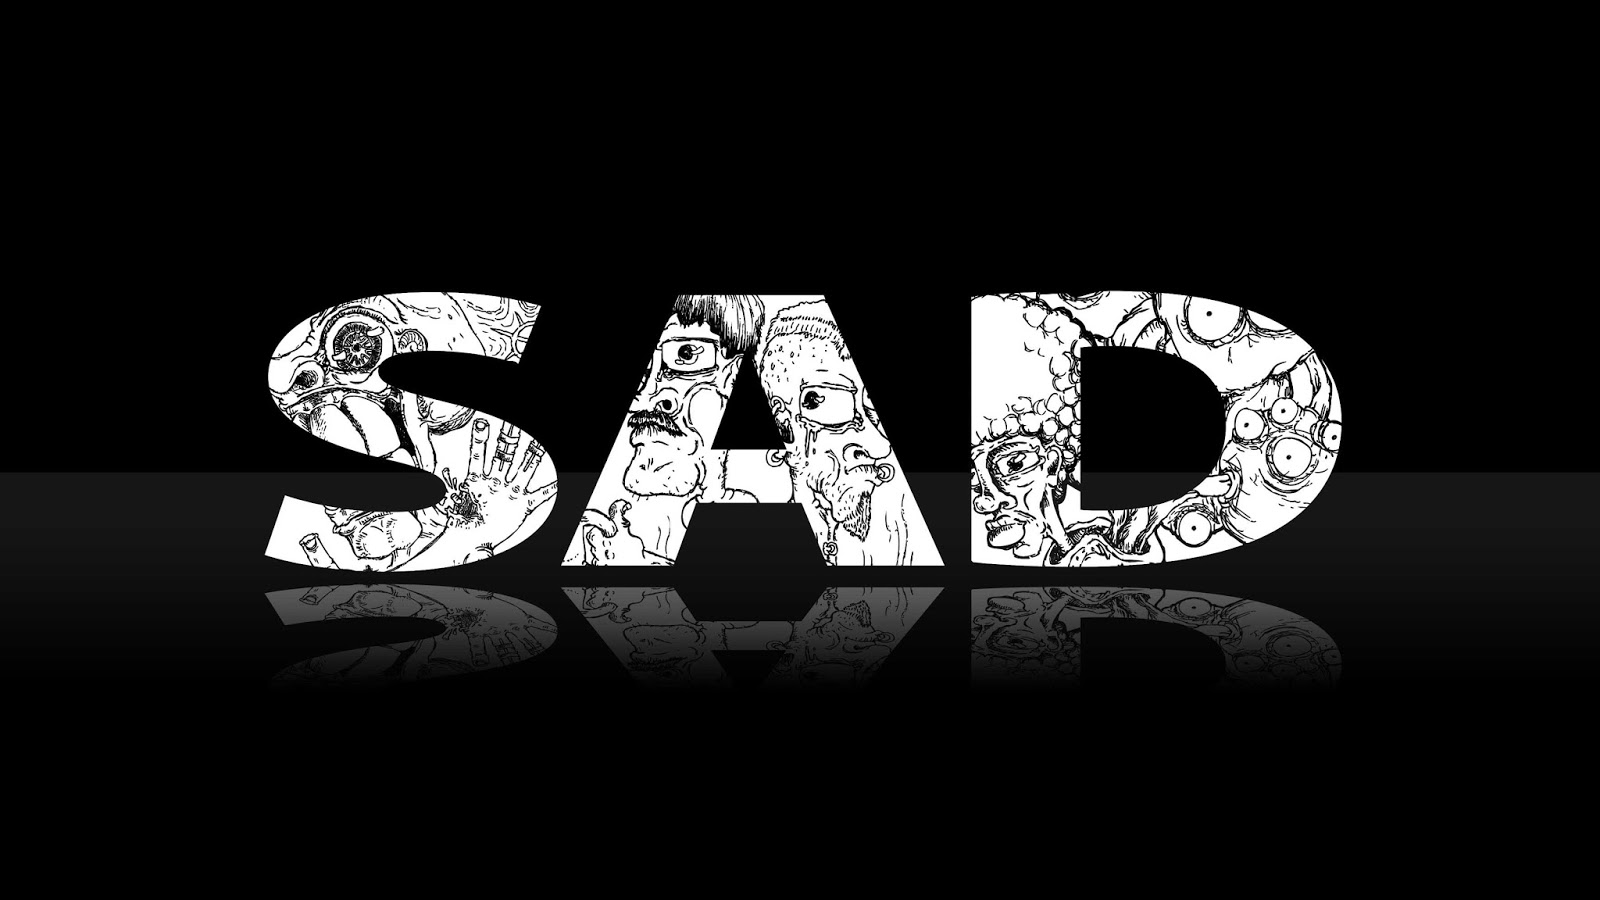 Sad Love Wallpaper Hd Quality : High Quality Wallpapers : Hd Sad Wallpapers